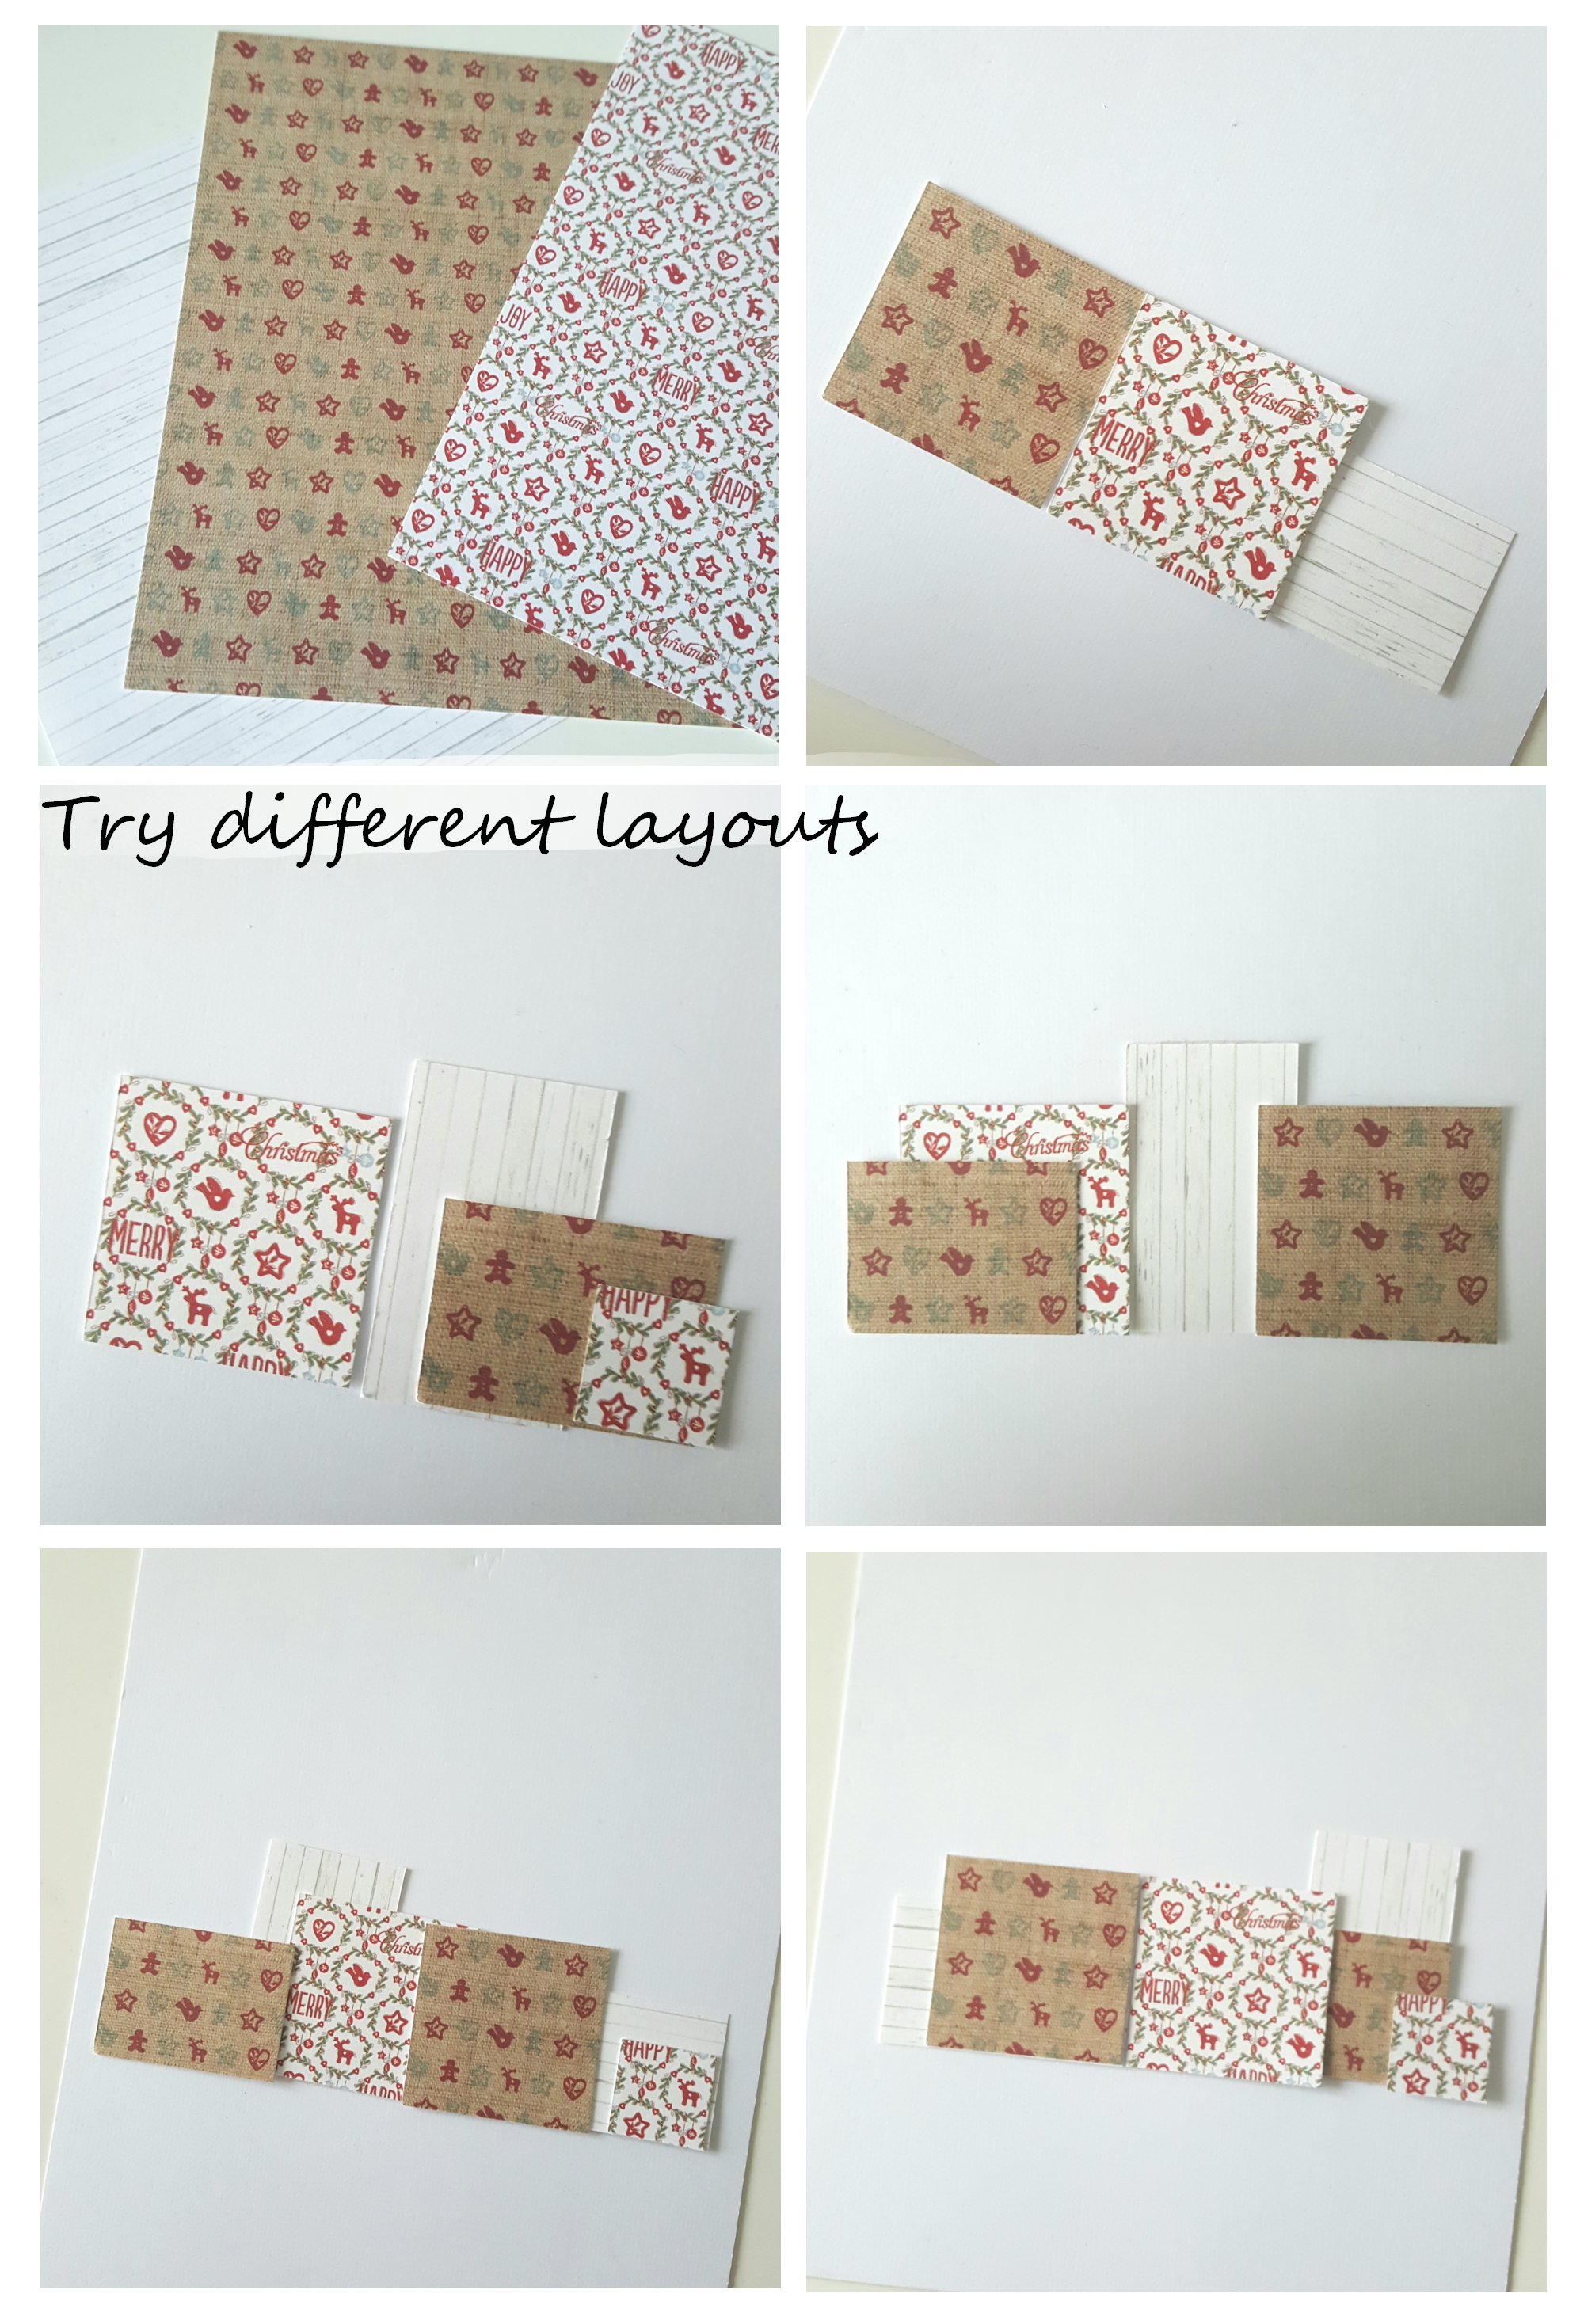 https://talilifestyle.com/2018/12/08/homemade-card-ideas/